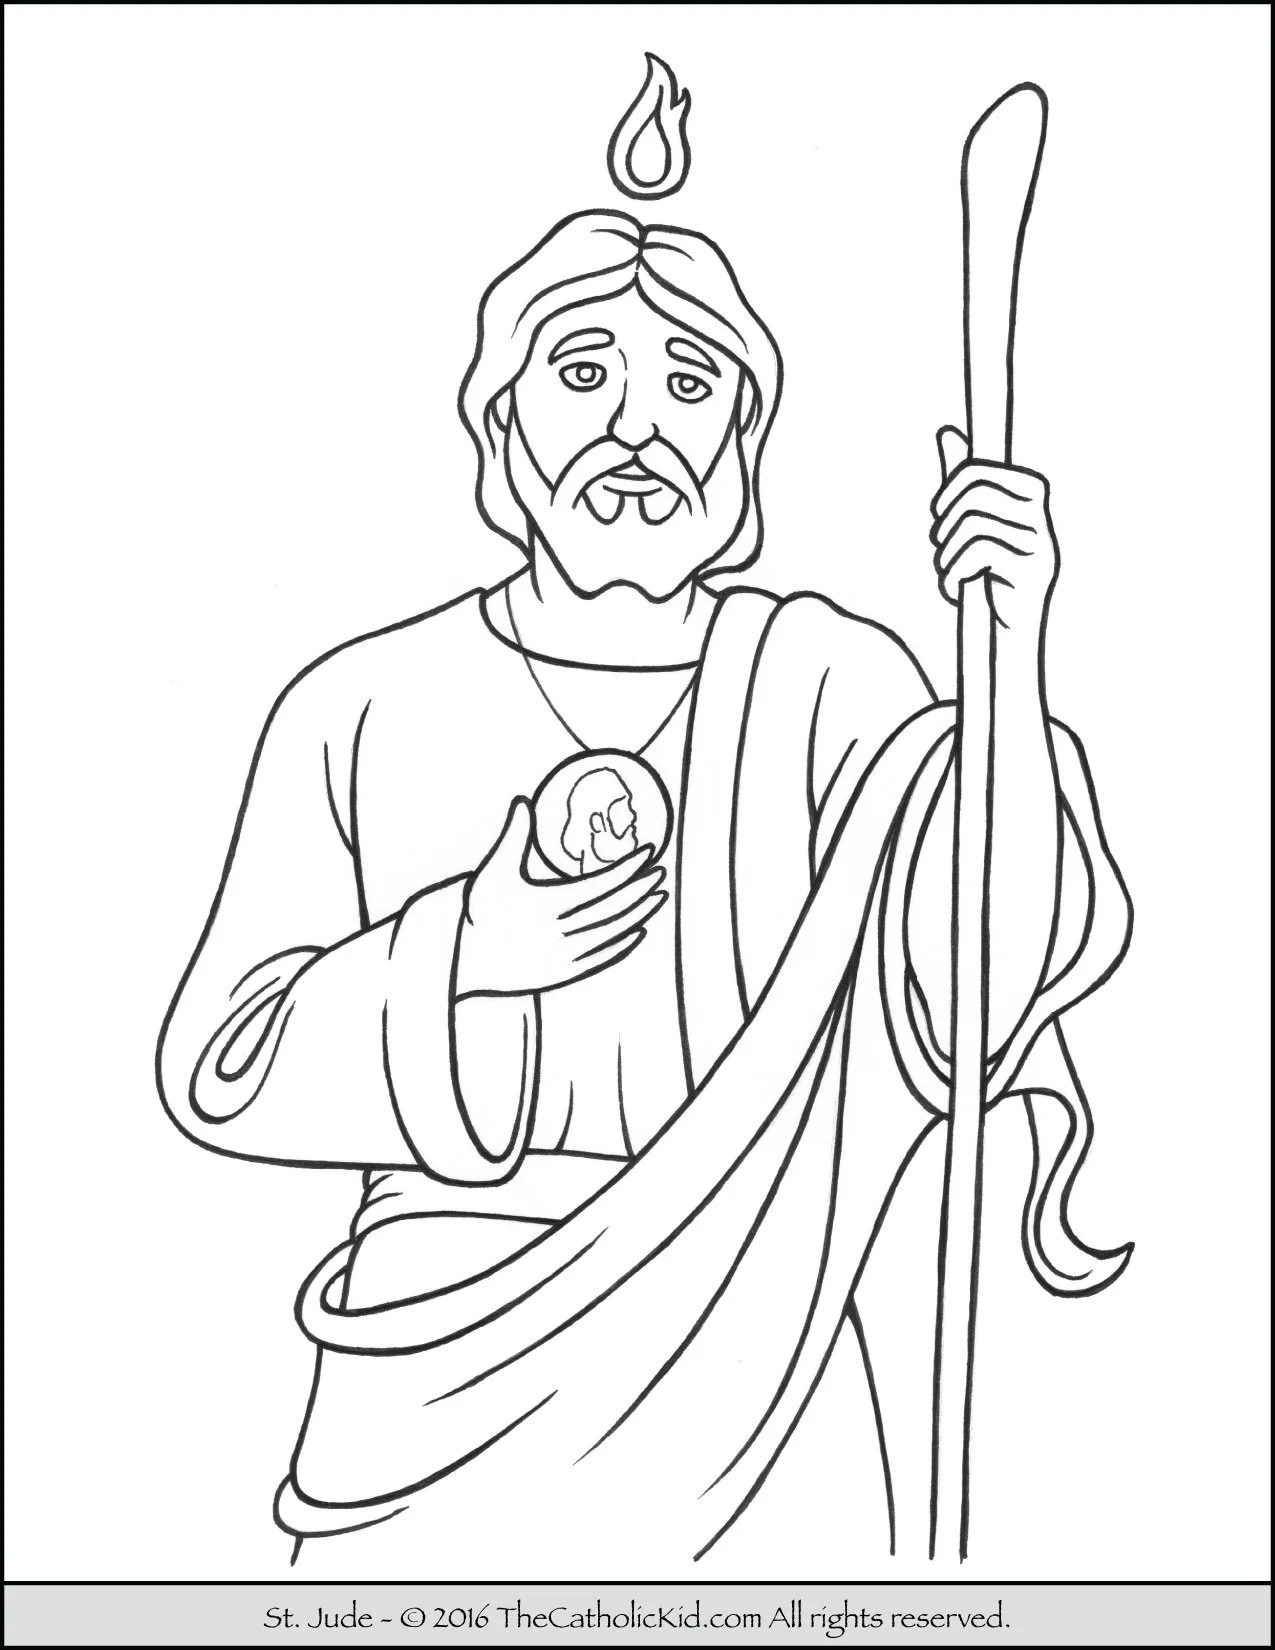 Saint Jude Coloring Page